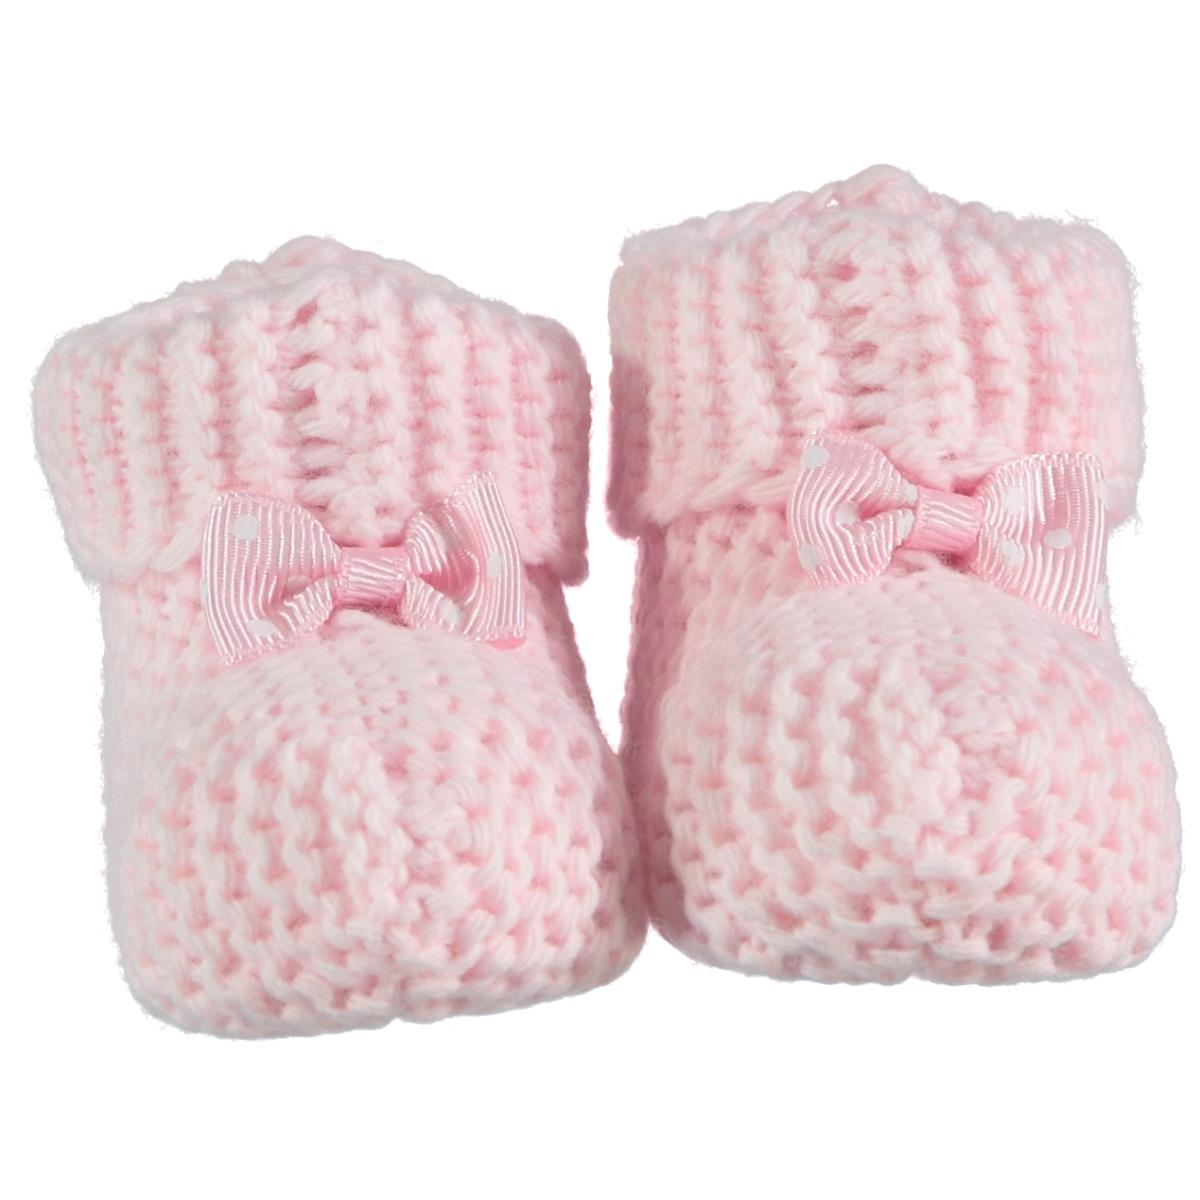 Recos Accessories Knitwear Baby Booties 0-6 Months Pink